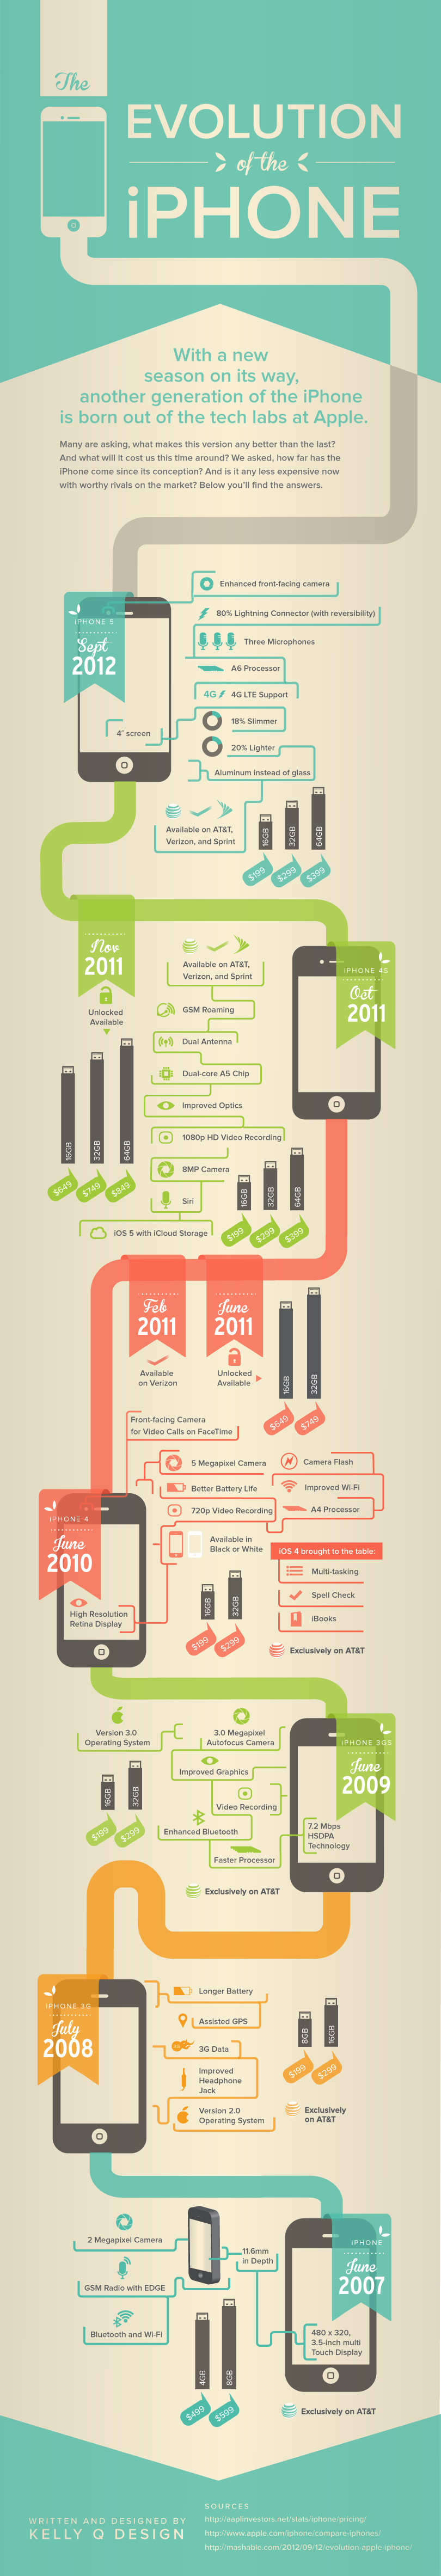 iphone-evolution-timeline-specs-infographic